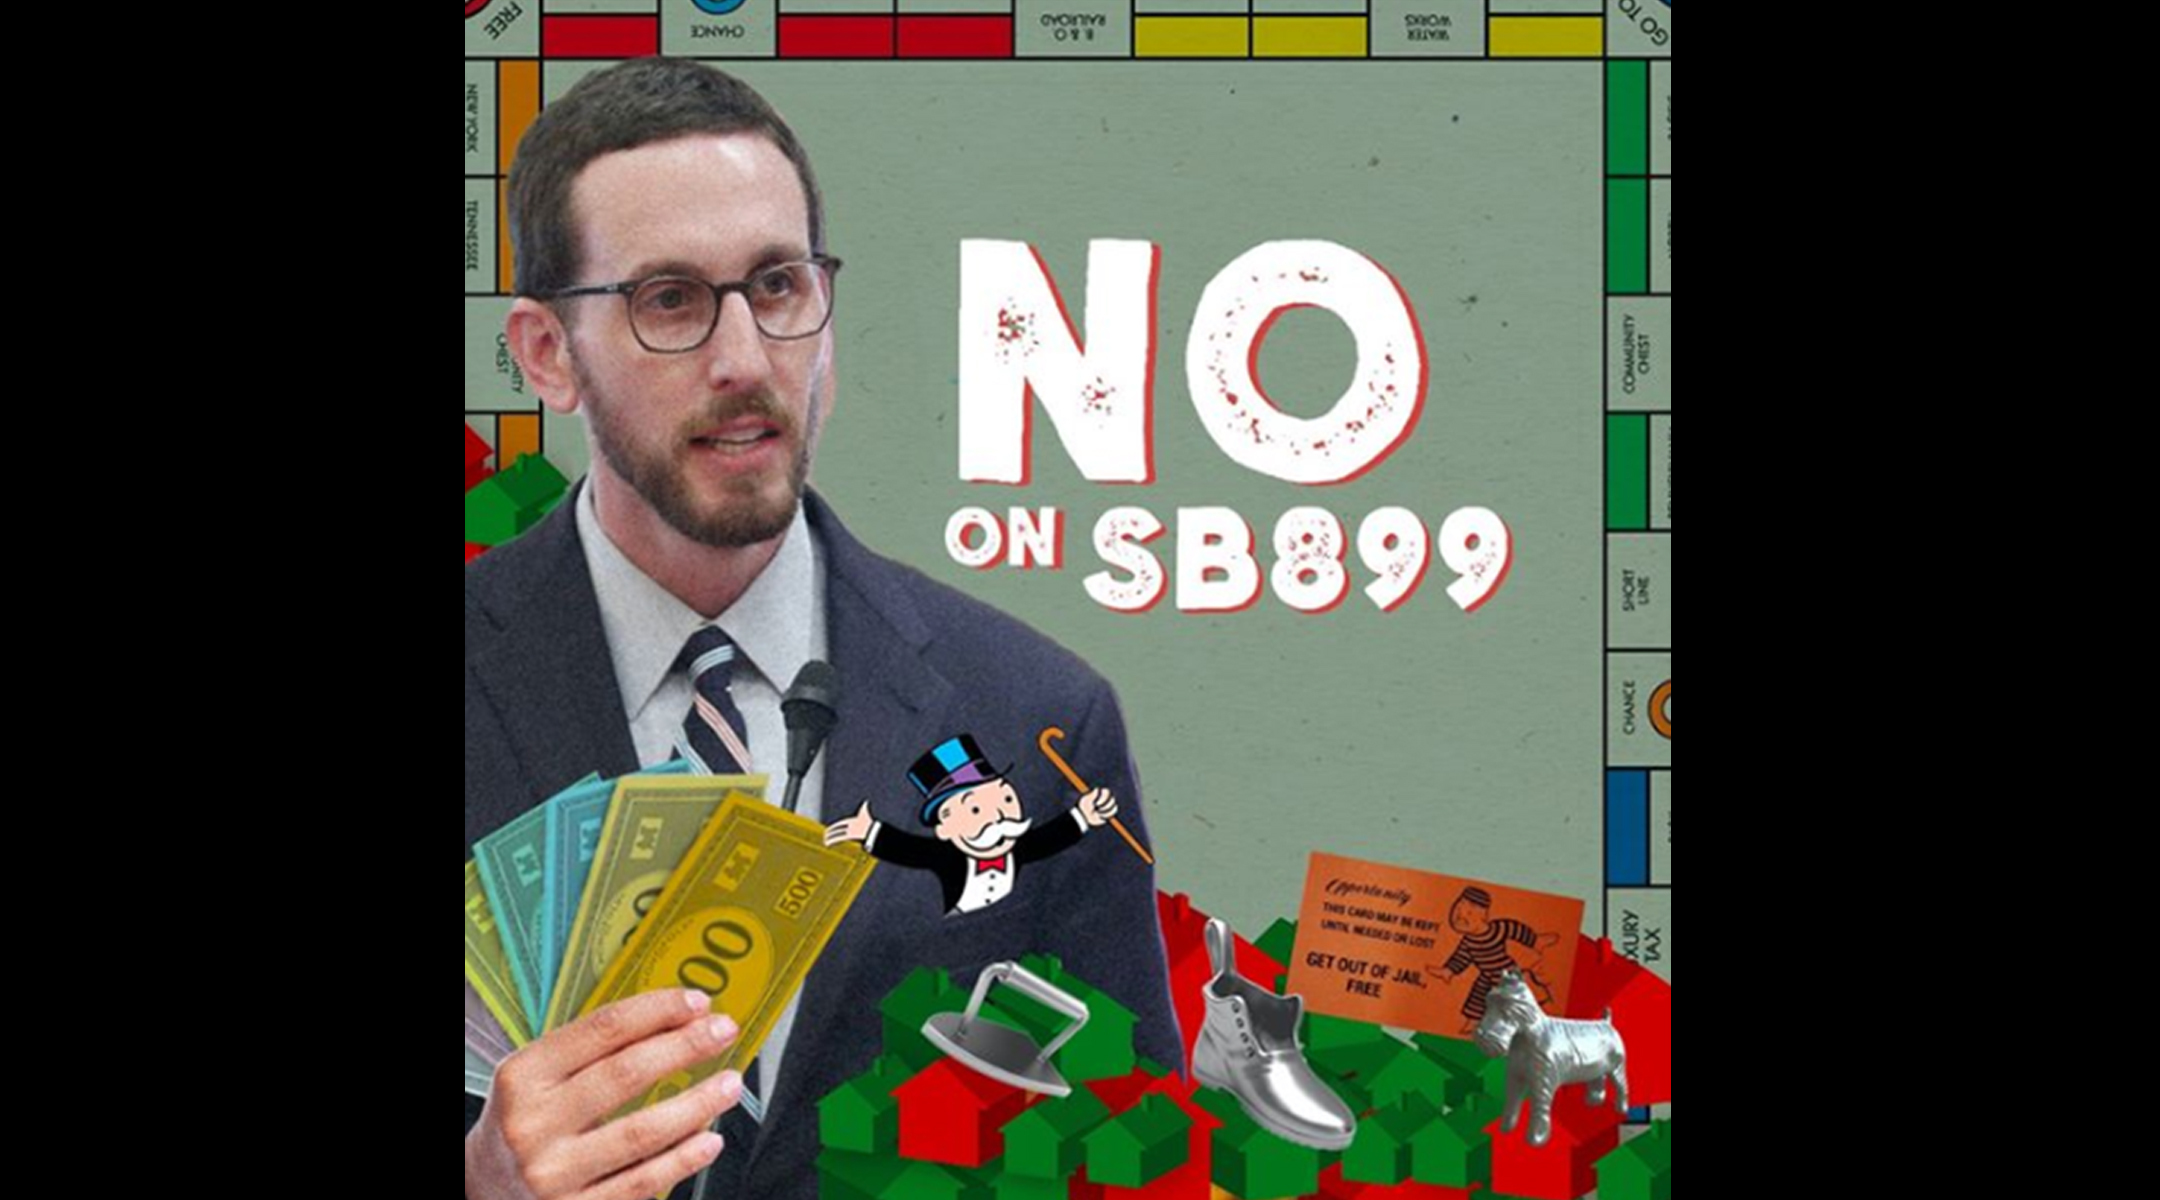 This image of State Sen. Scott Wiener was said to evoke anti-Semitic stereotypes about Jews and money.